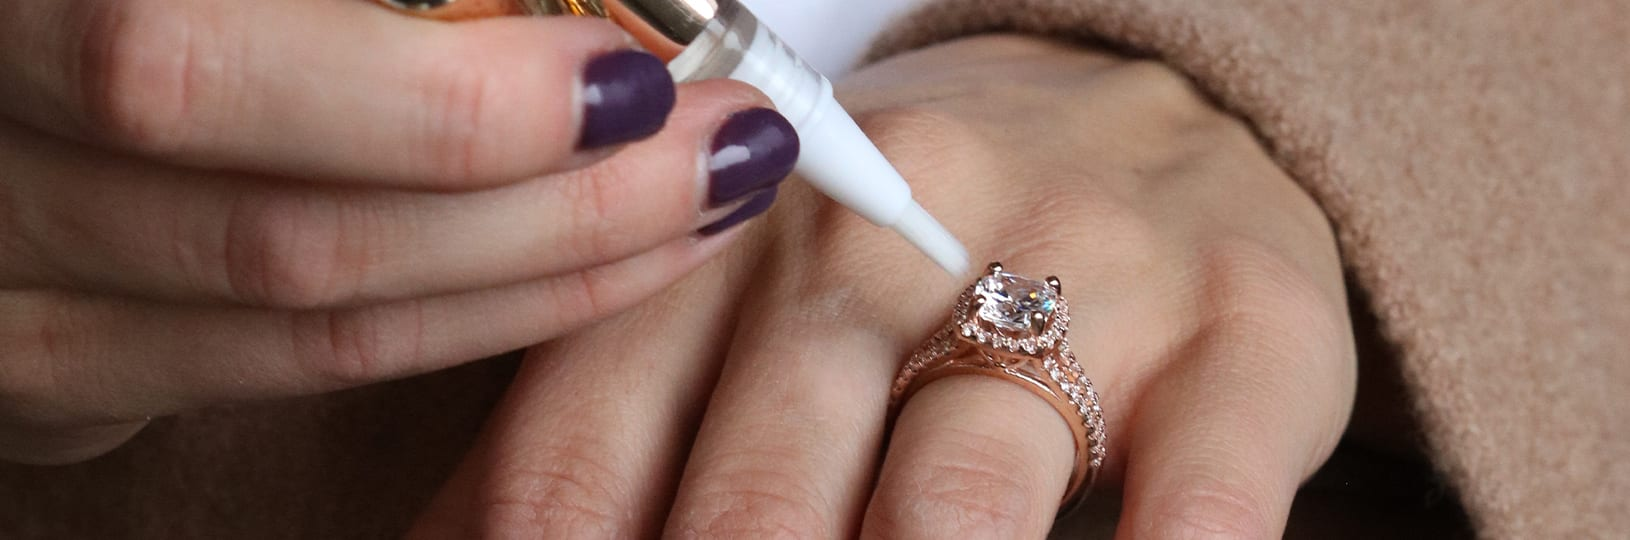 Engagement ring cleaning brush